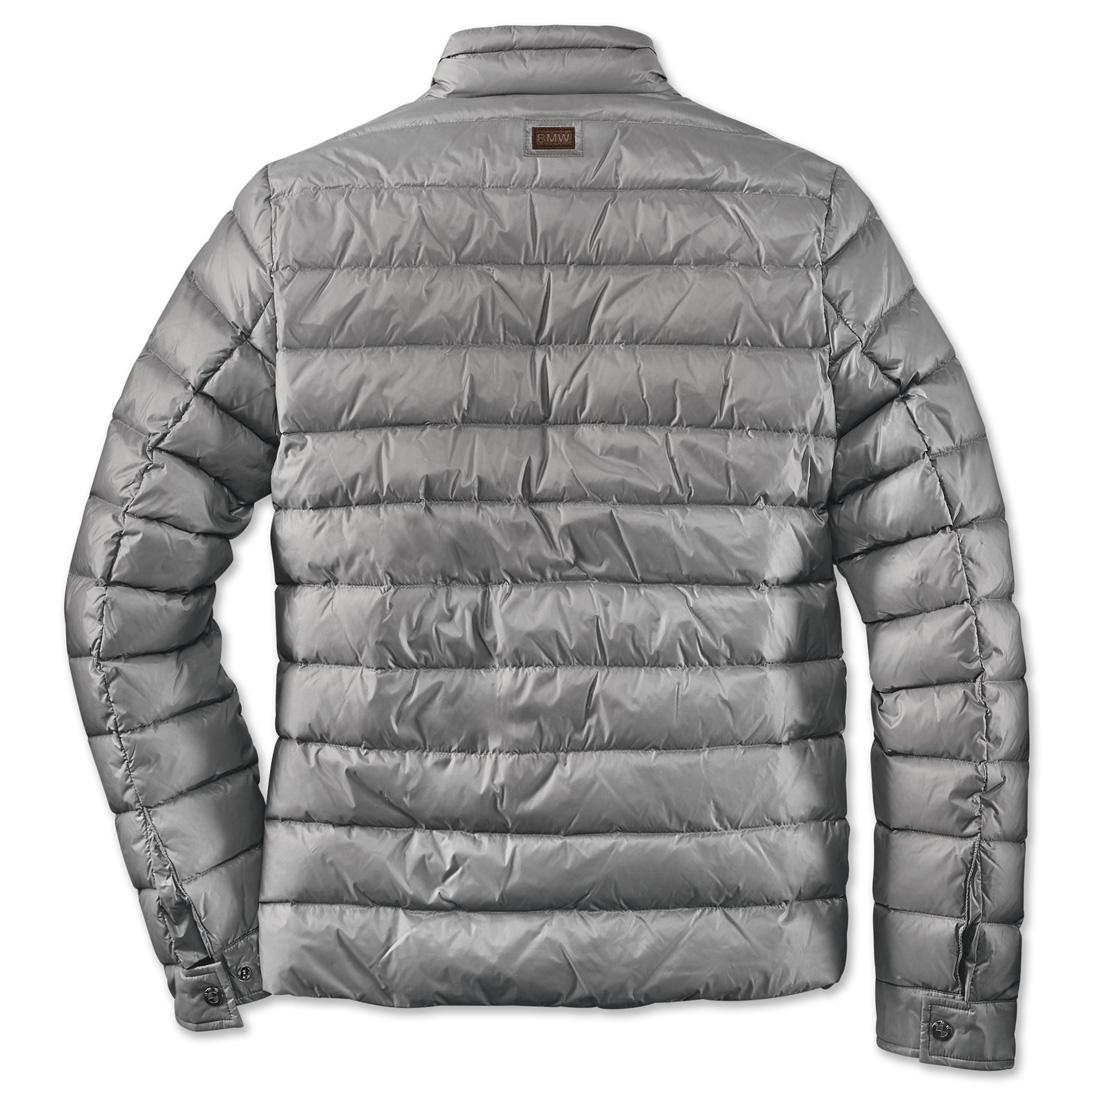 BMW Lightweight Down Jacket Men's Grey